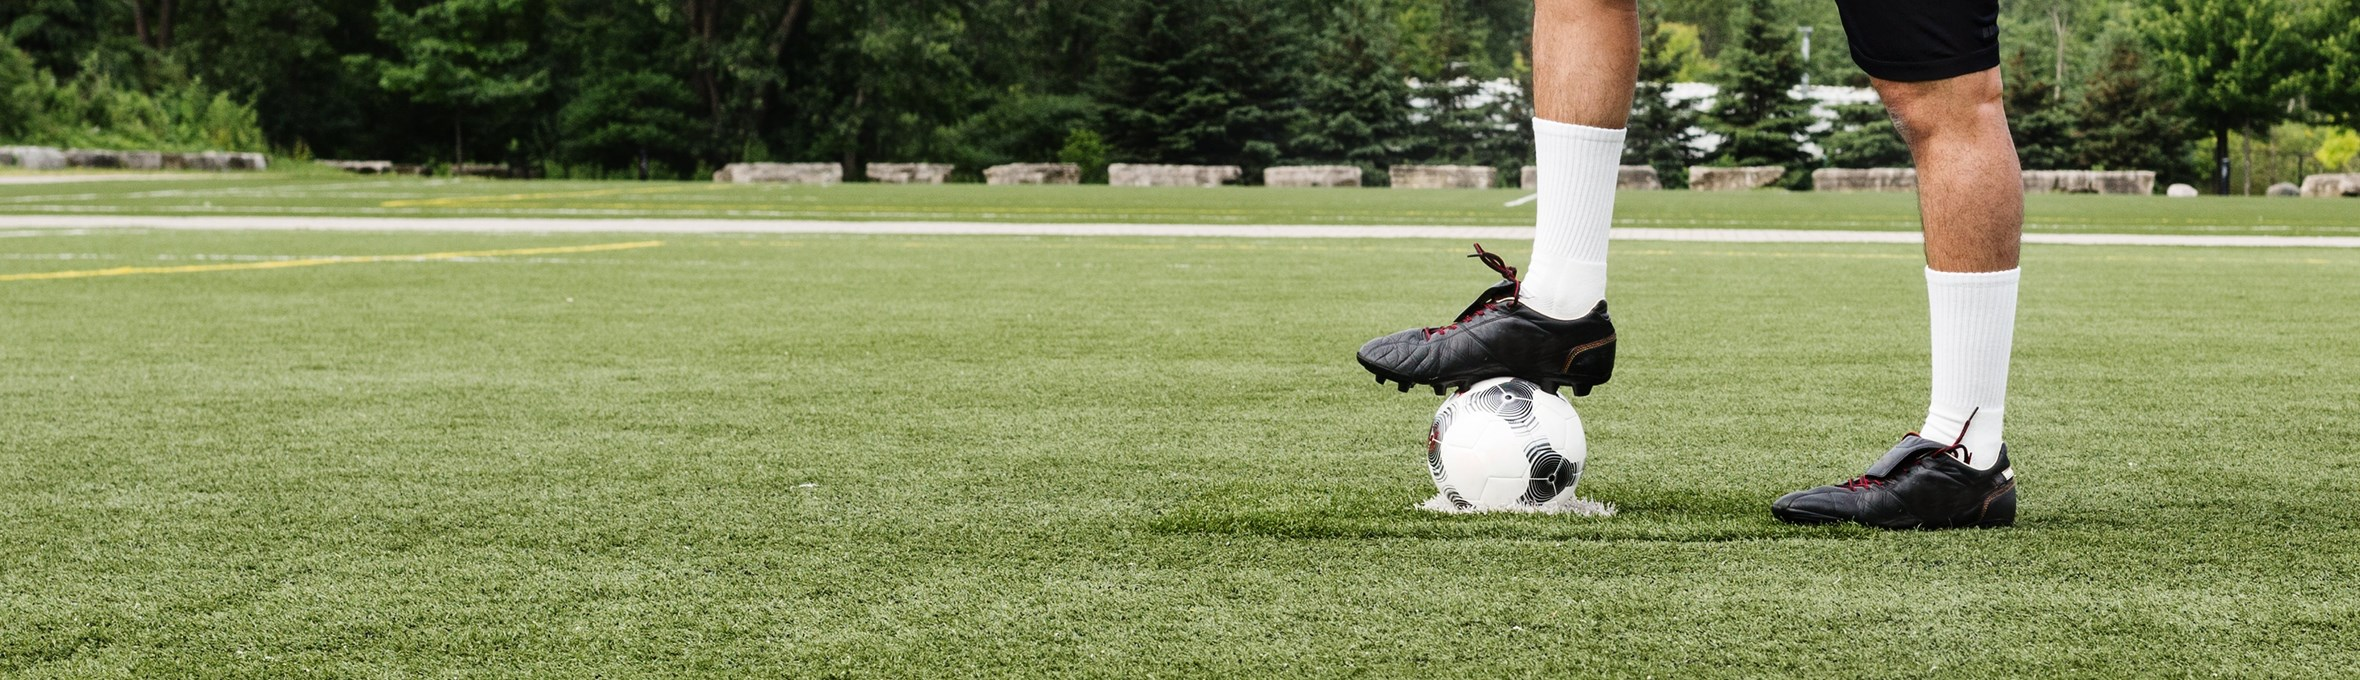 Foot resting on football on a green football pitch